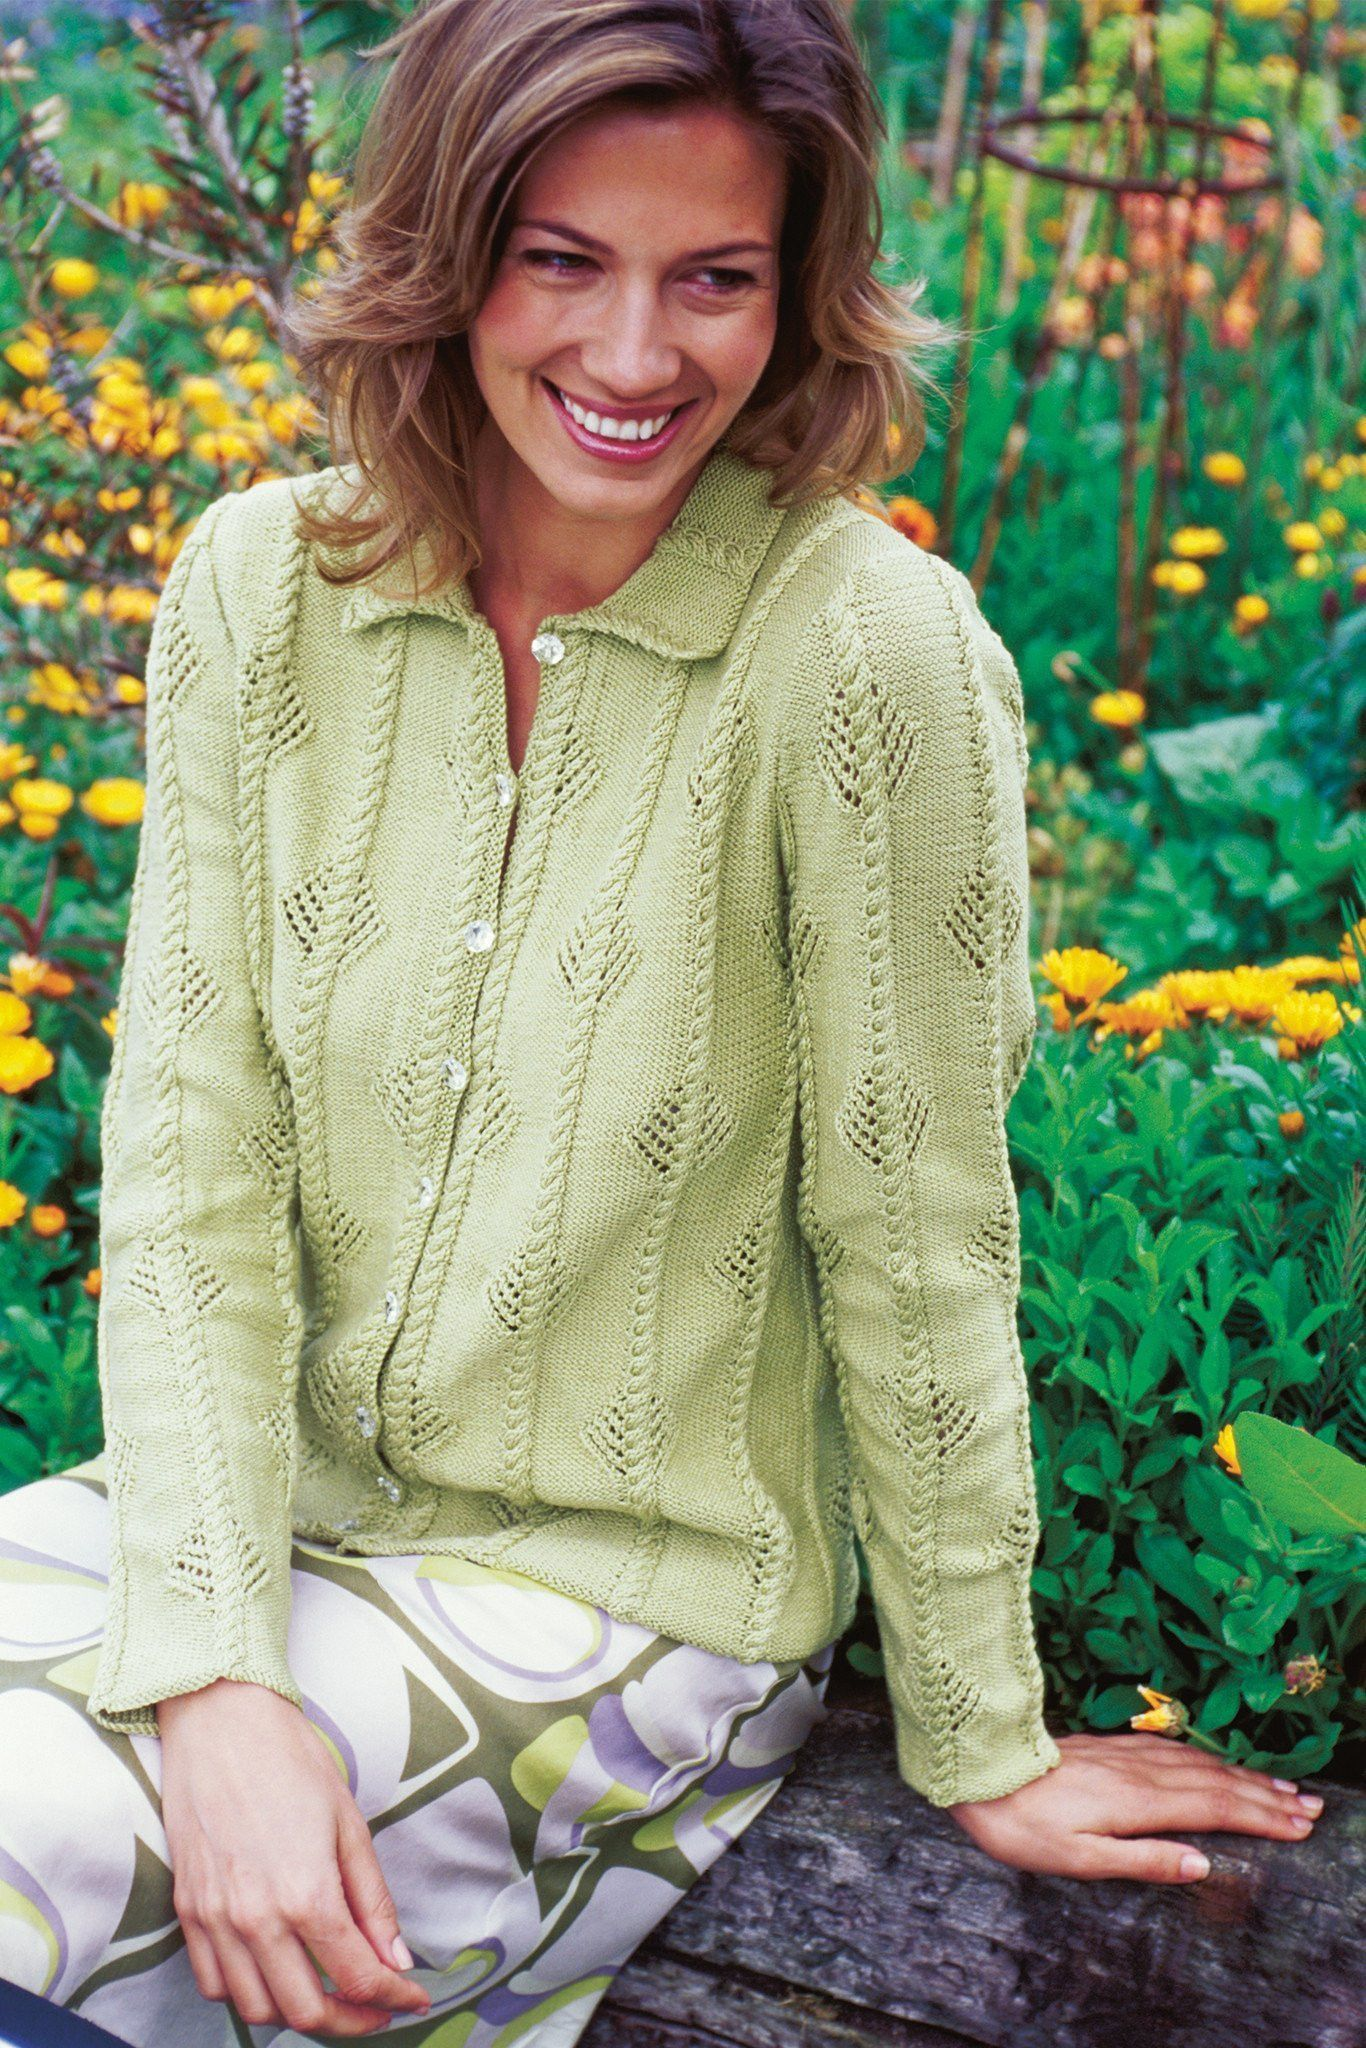 Cable Knit And Lace Ladies Cardigan Knitting Pattern | The ...